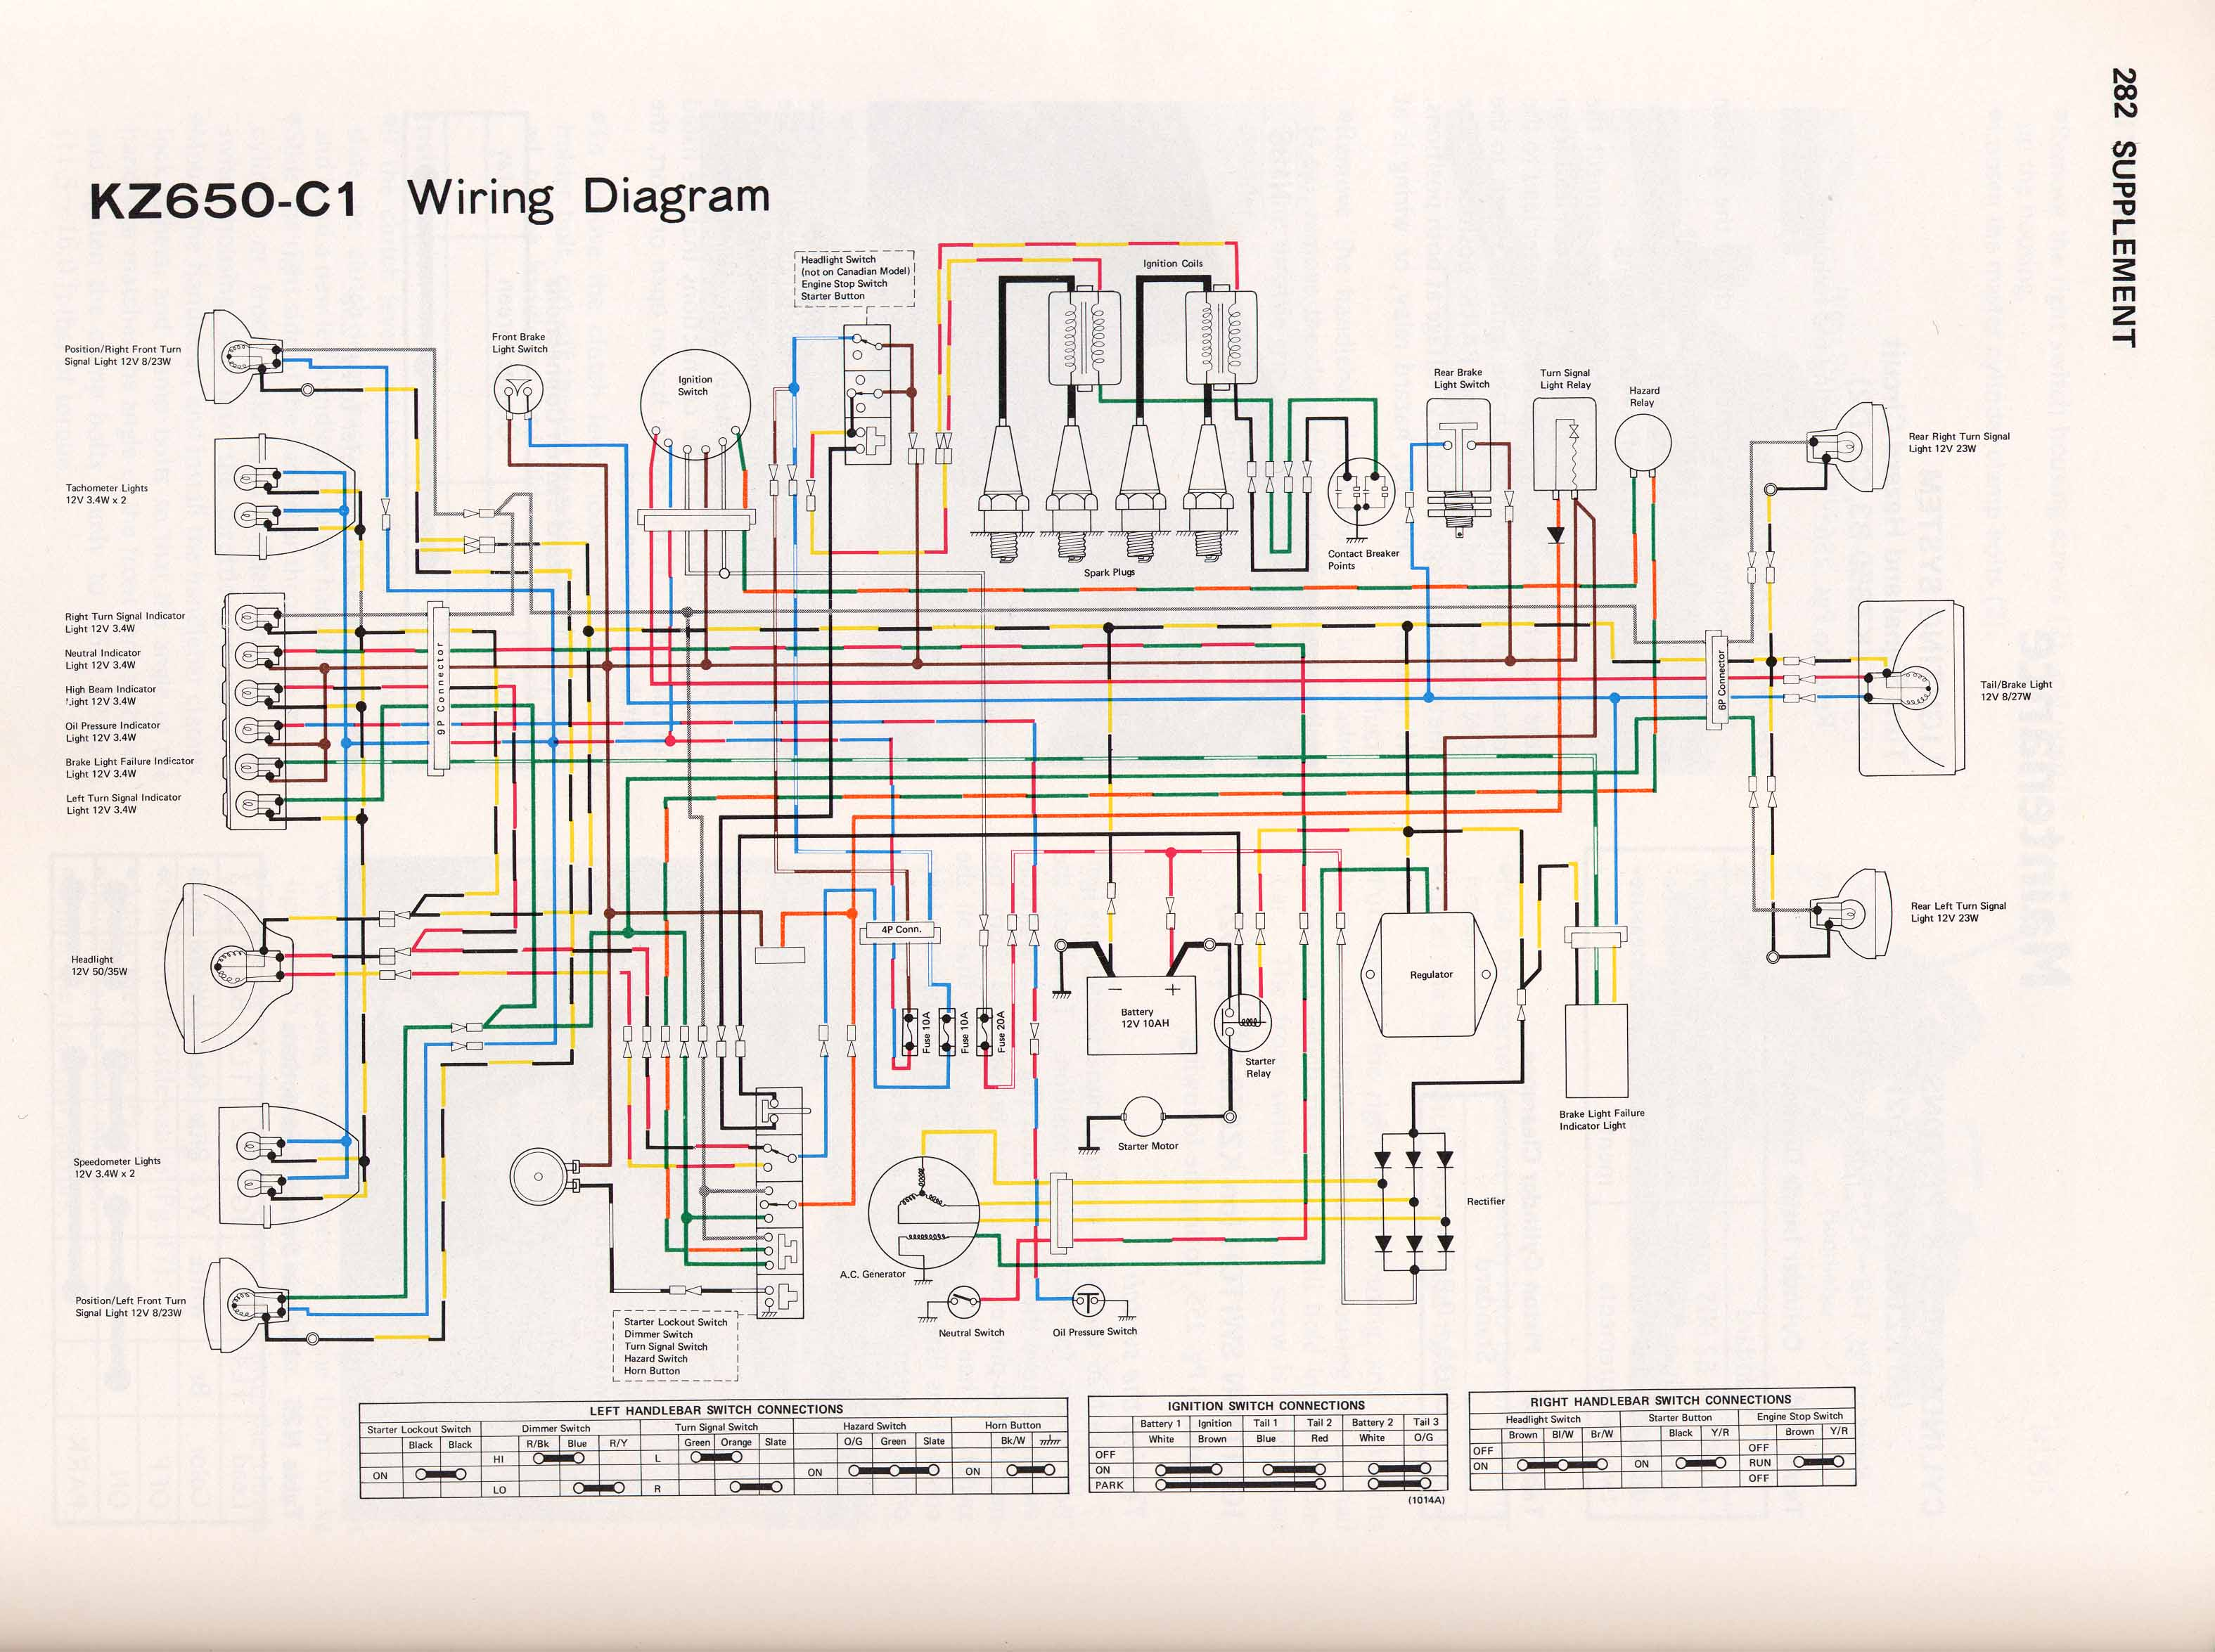 1981 1983 xv920 starting wiring diagram wiring diagram rh 11 yoga neuwied de